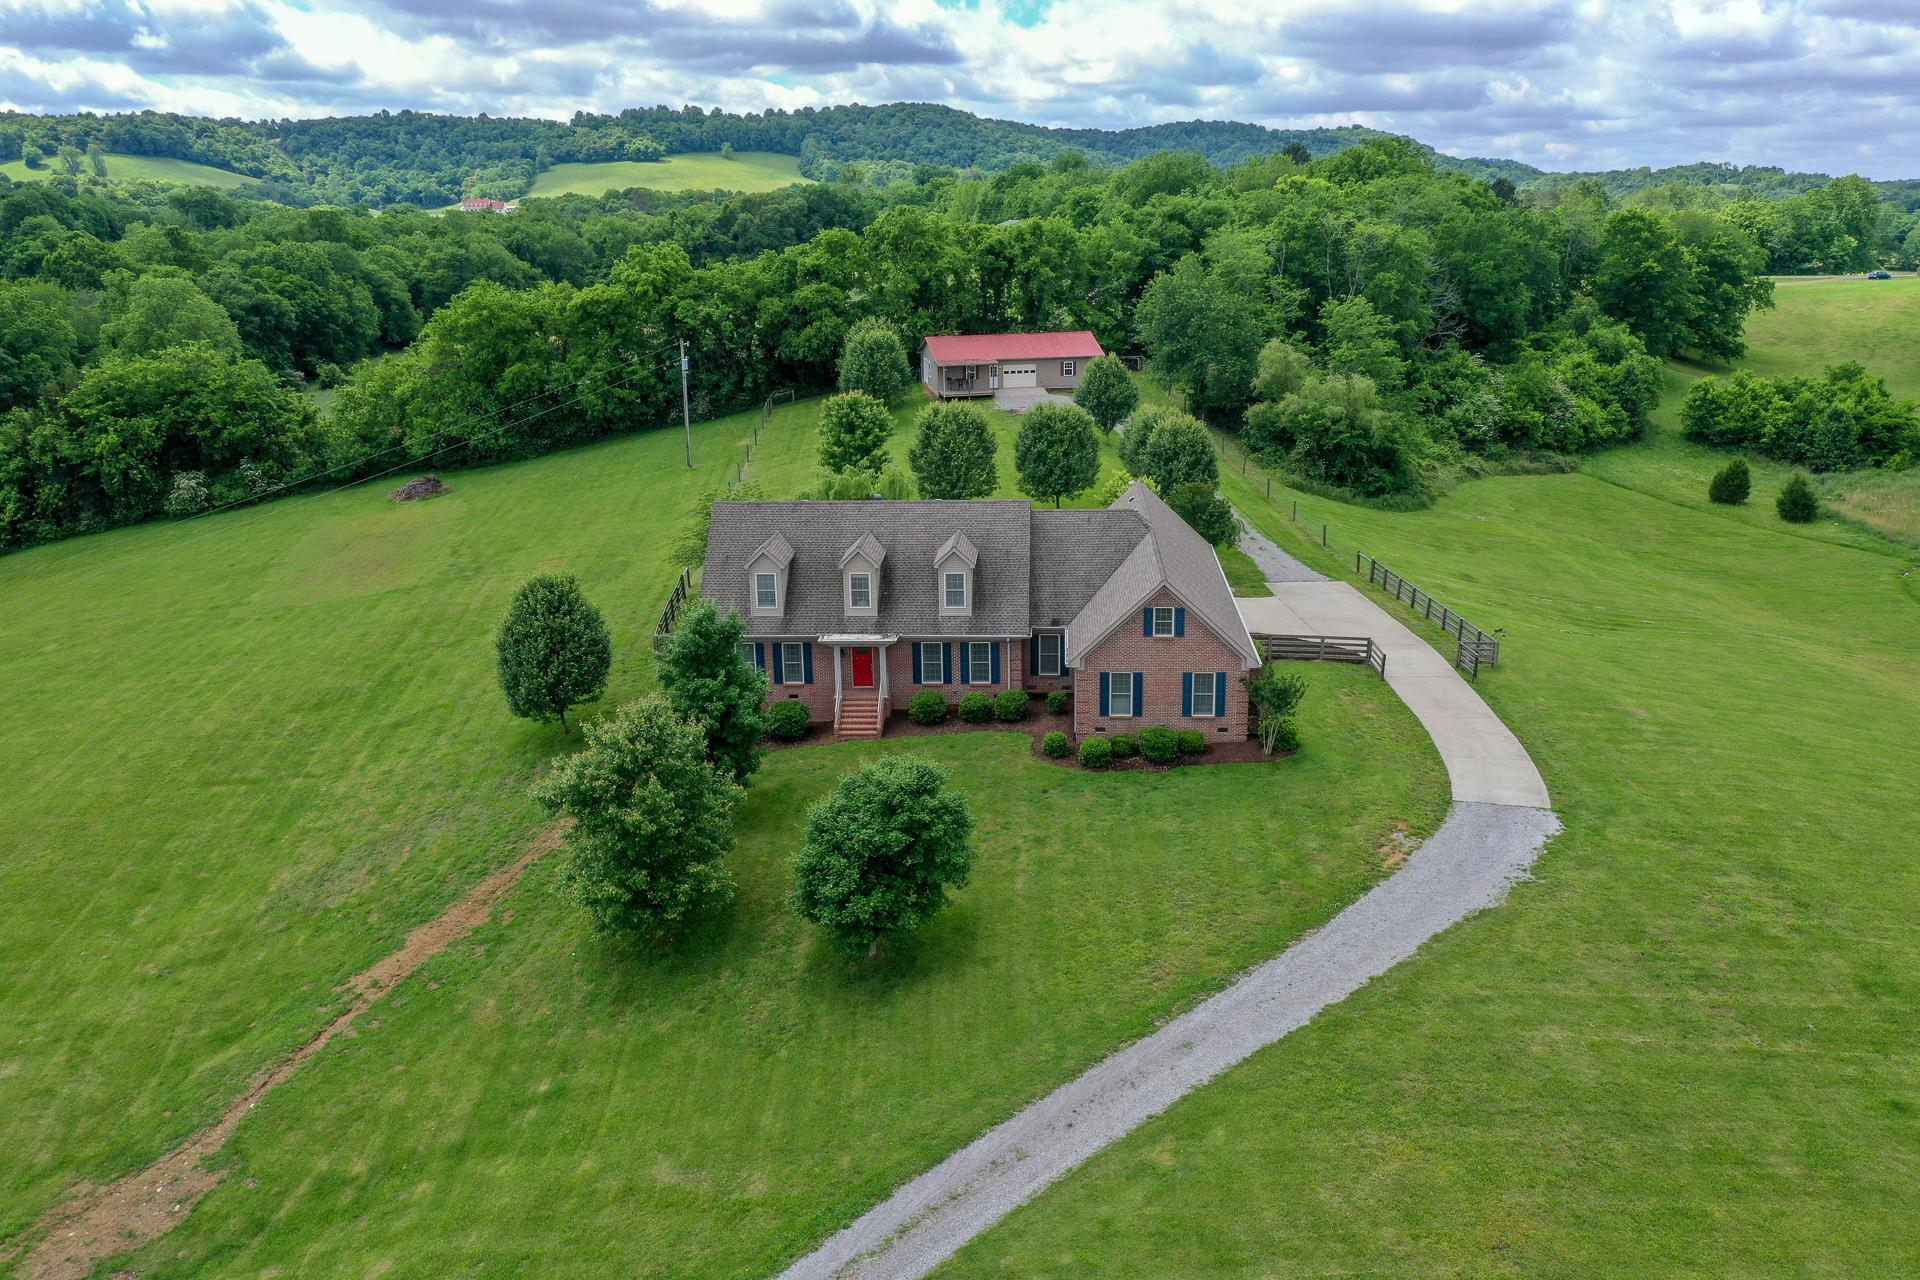 1001 Buddy Jones Rd, Lewisburg, TN 37091 - Lewisburg, TN real estate listing